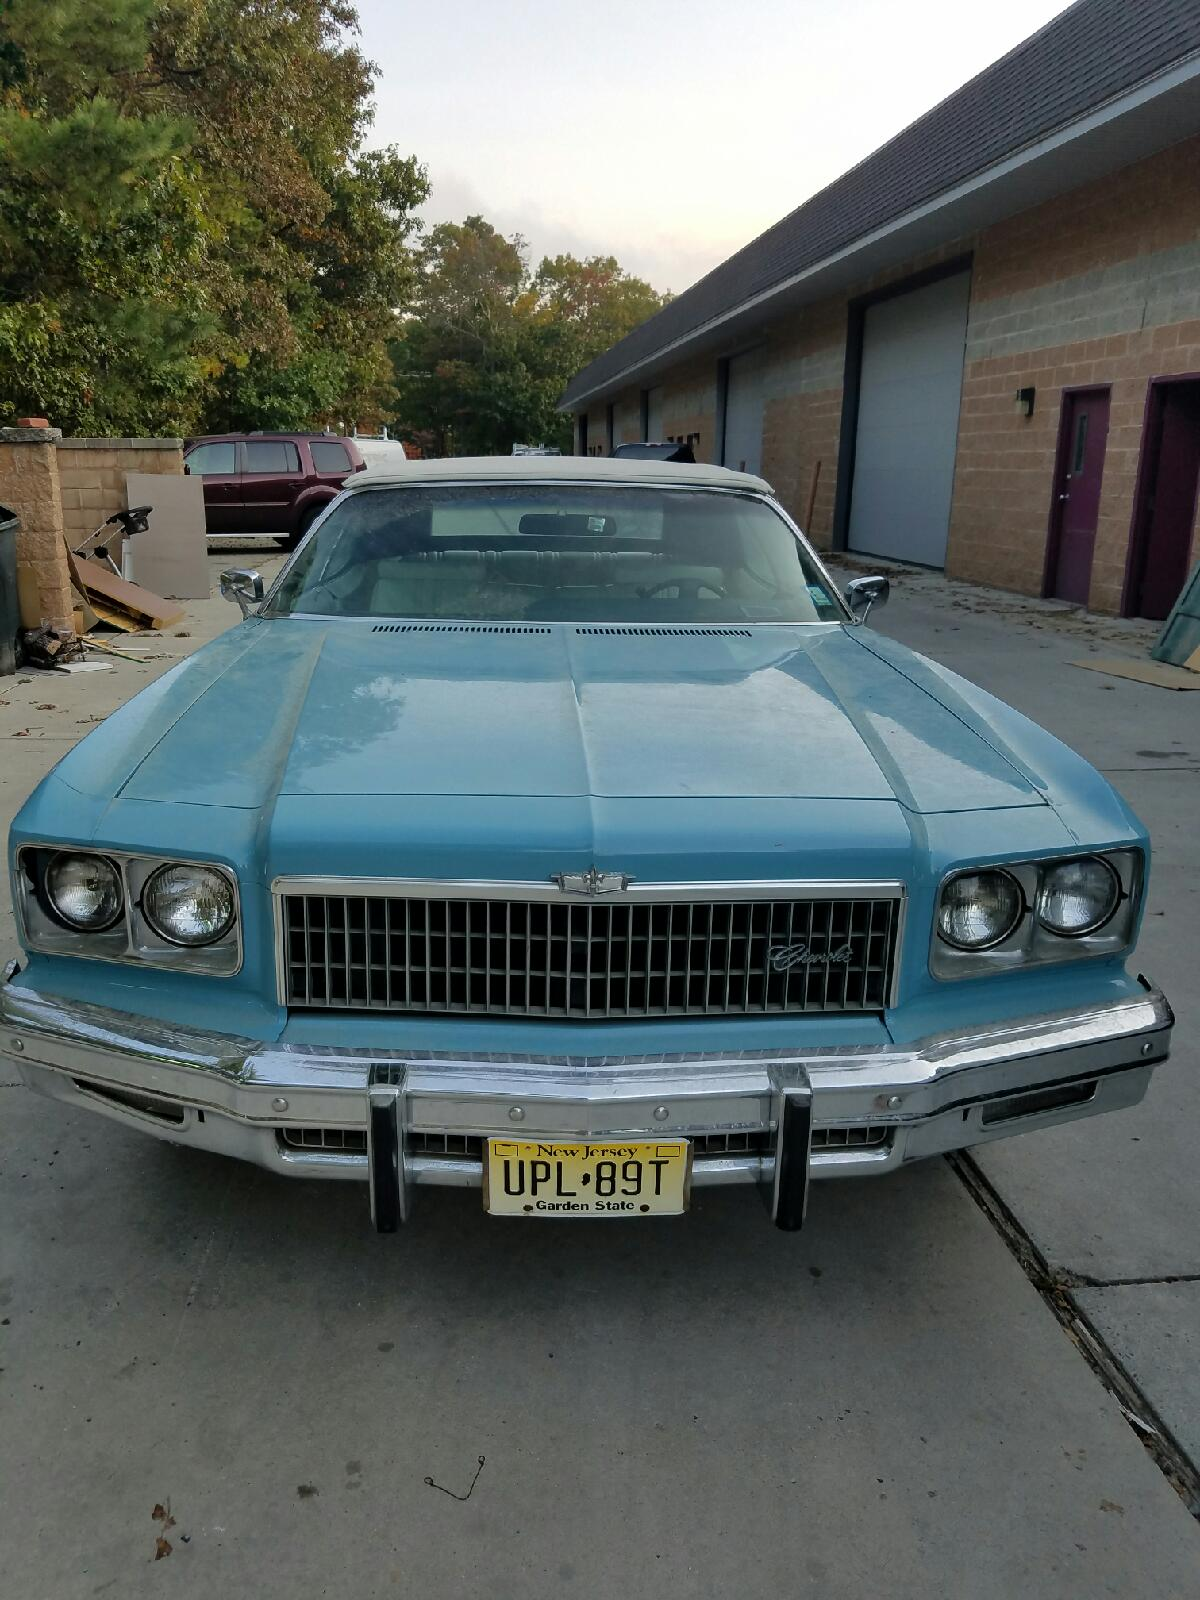 75 caprice classic input wanted chevy impala forums. Black Bedroom Furniture Sets. Home Design Ideas